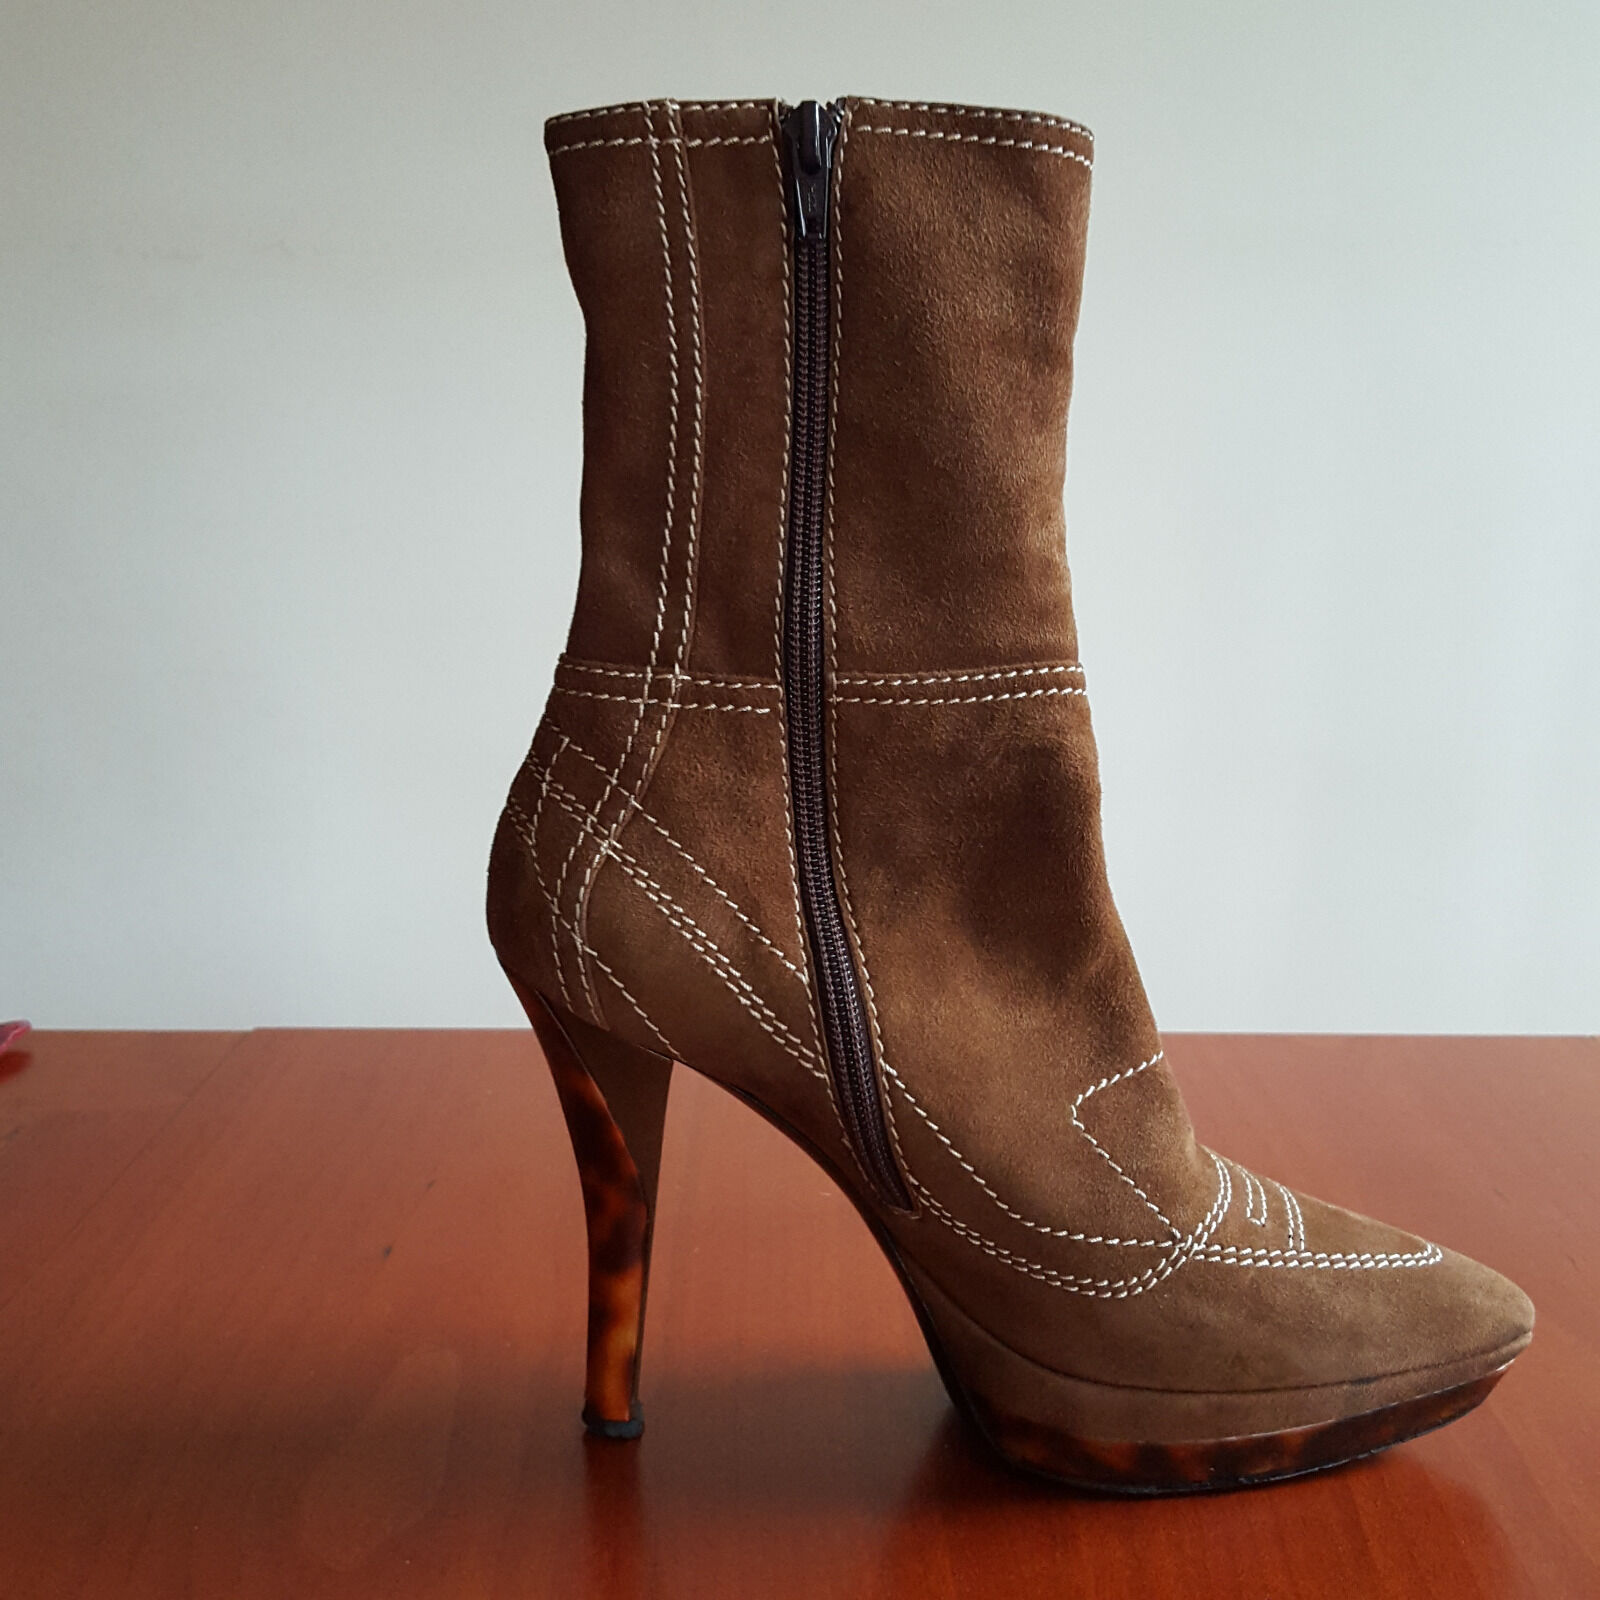 THE HILLS LOVERS OF CASADEI HIGH HILLS THE ELEGANT SUEDE ANKLE BOOTS, SIZE 7 40e6be